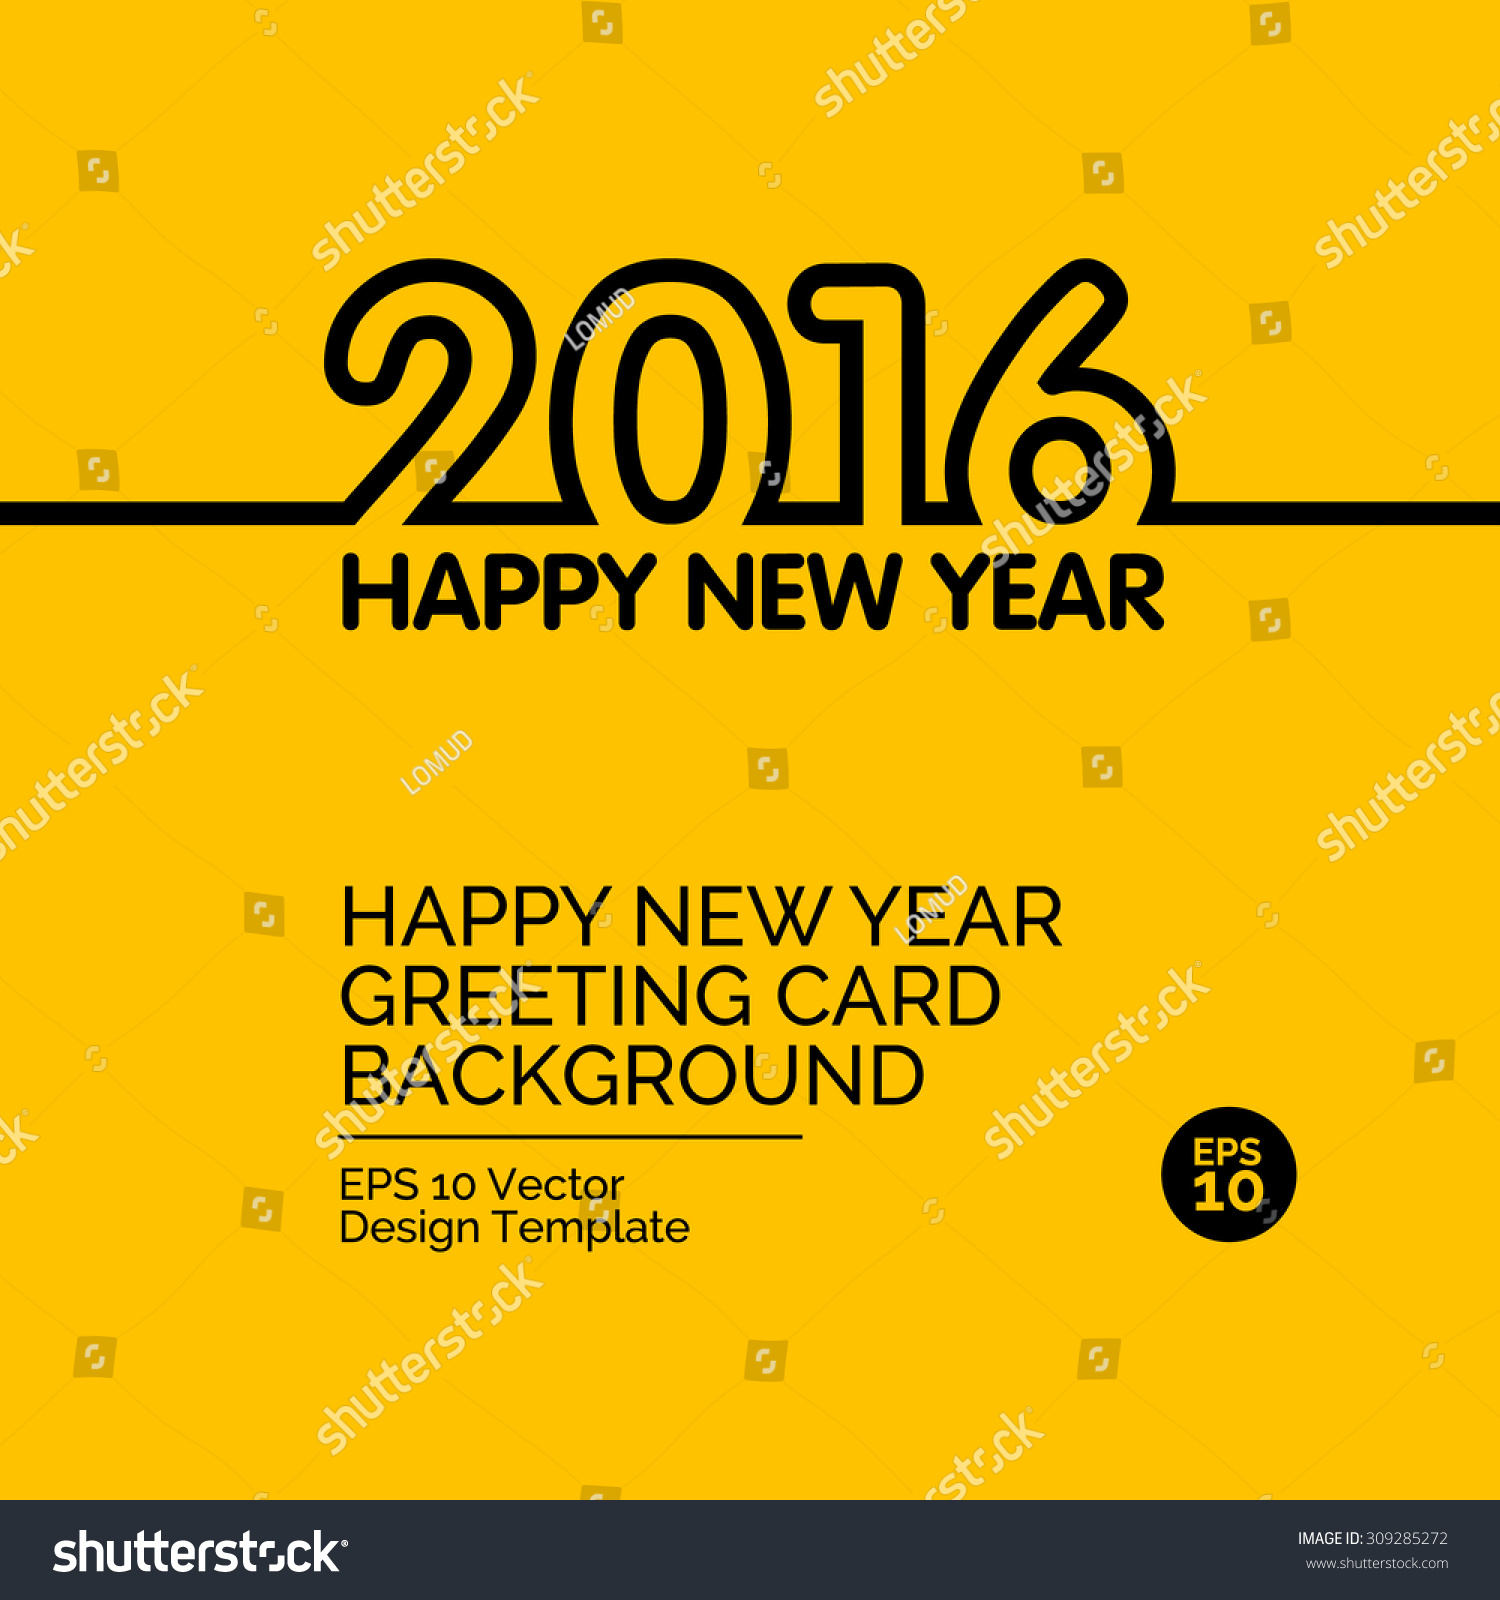 Happy New Year 2016 Greeting card design concept on yellow background Vector collection